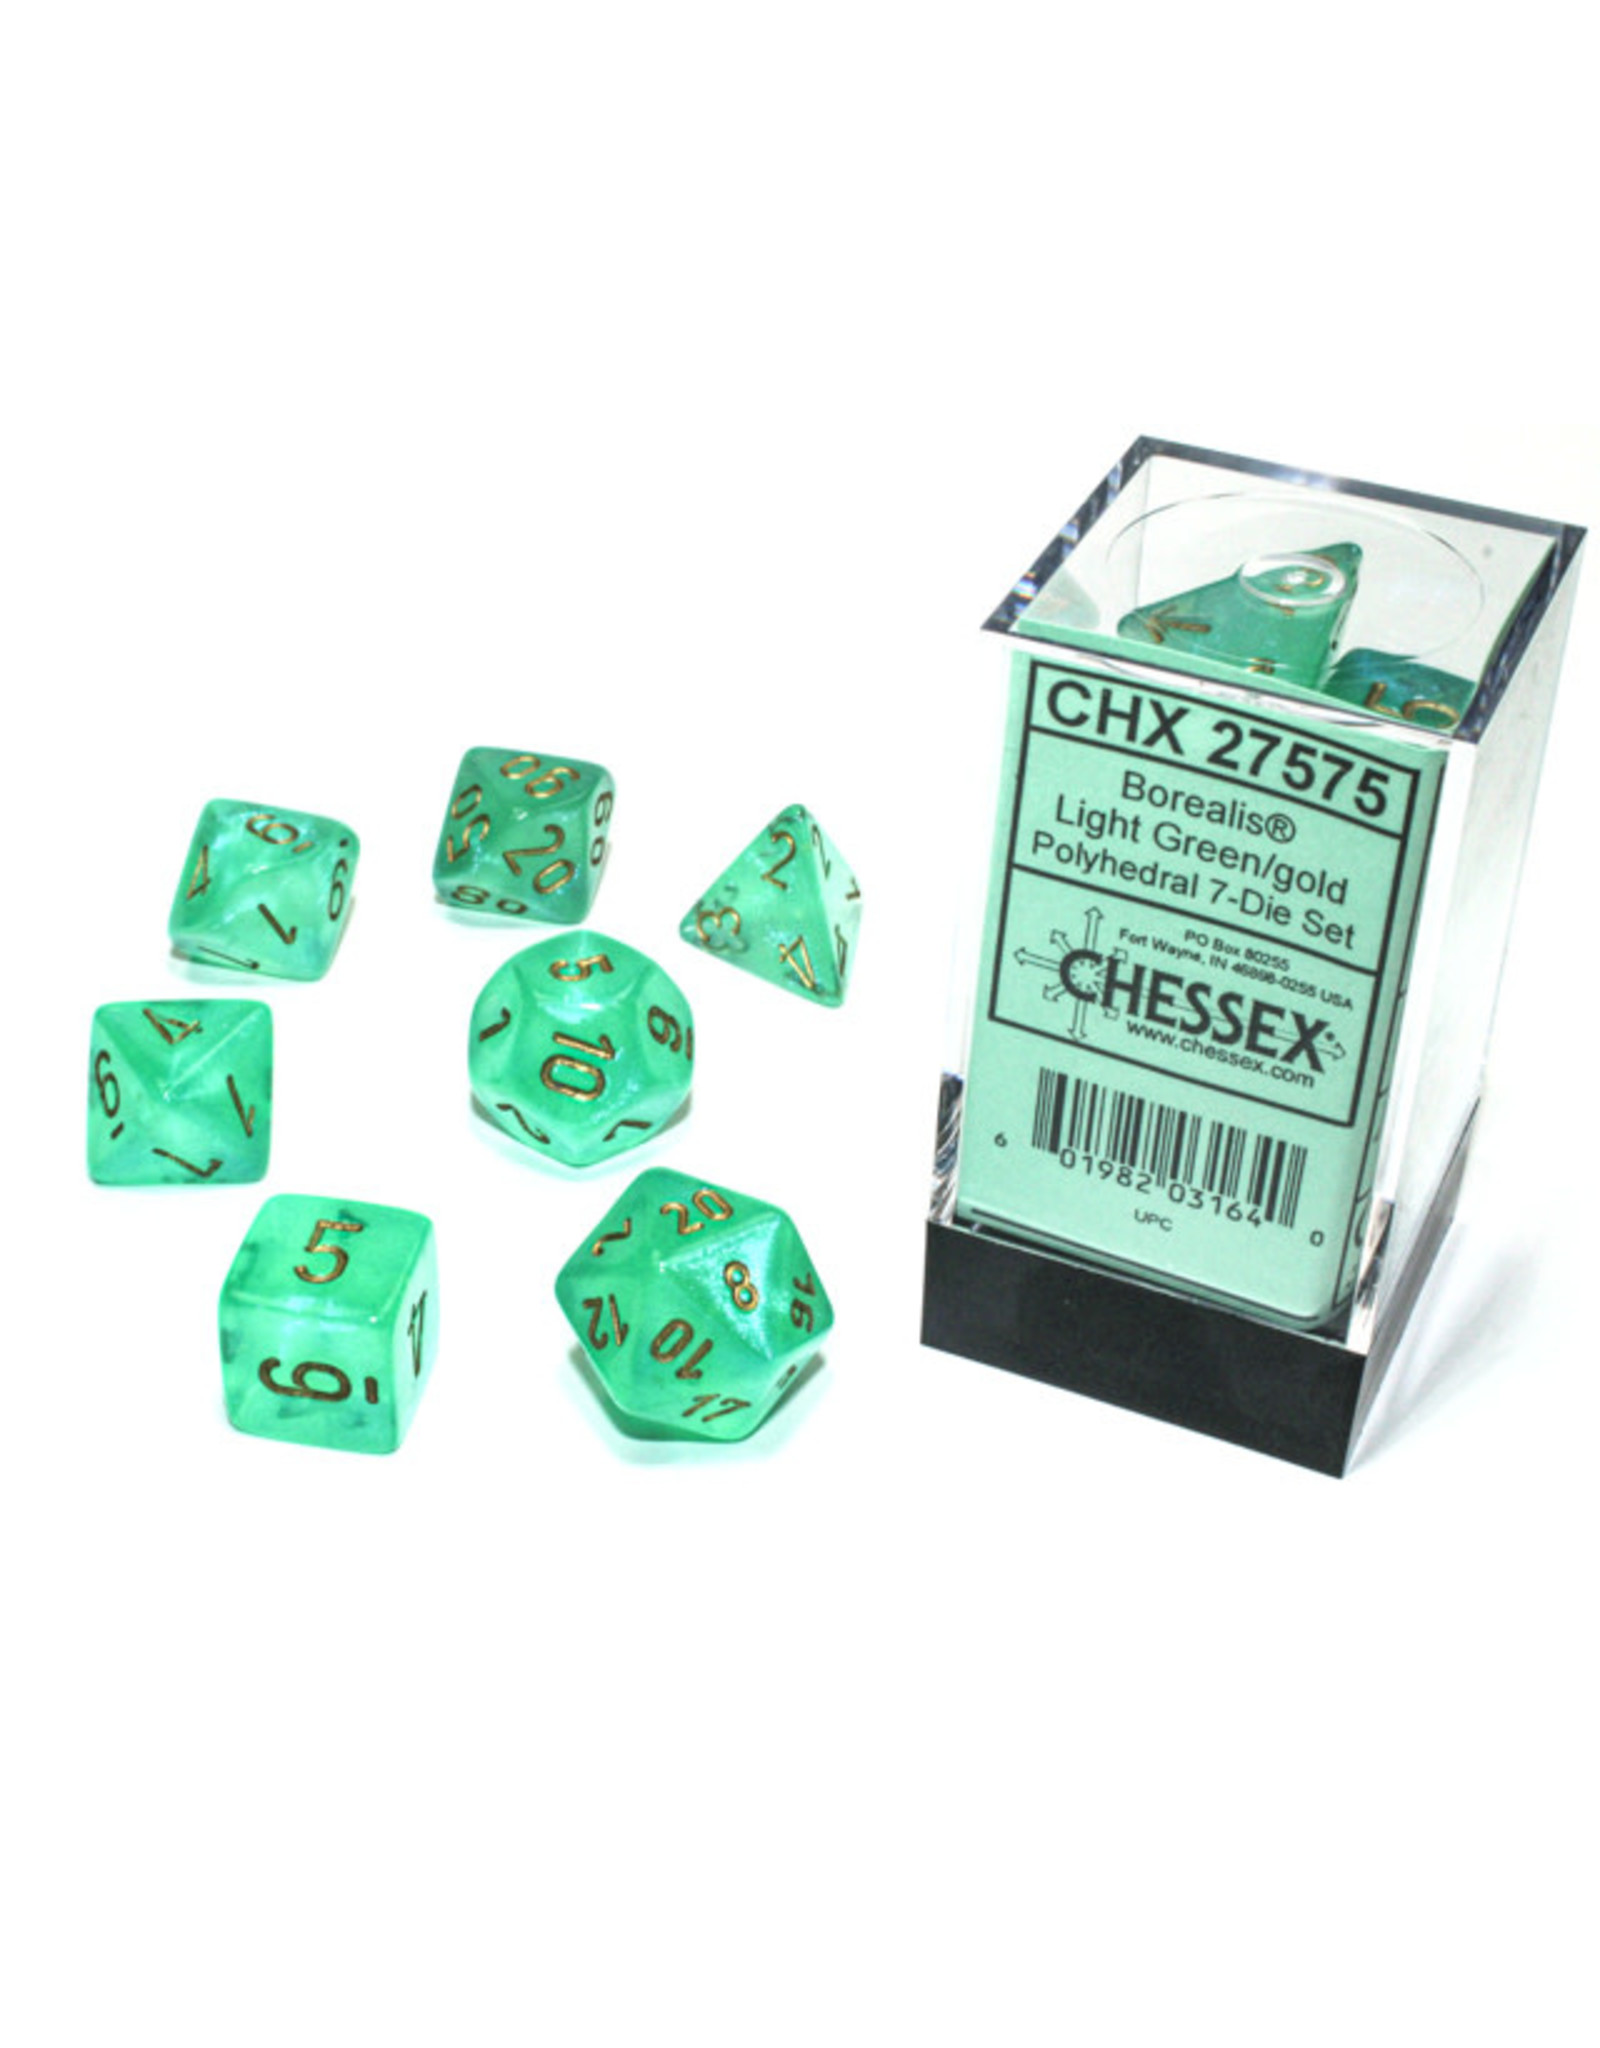 Chessex Borealis: Polyhedral Light Green/gold Luminary 7-Die Set CHX 27575